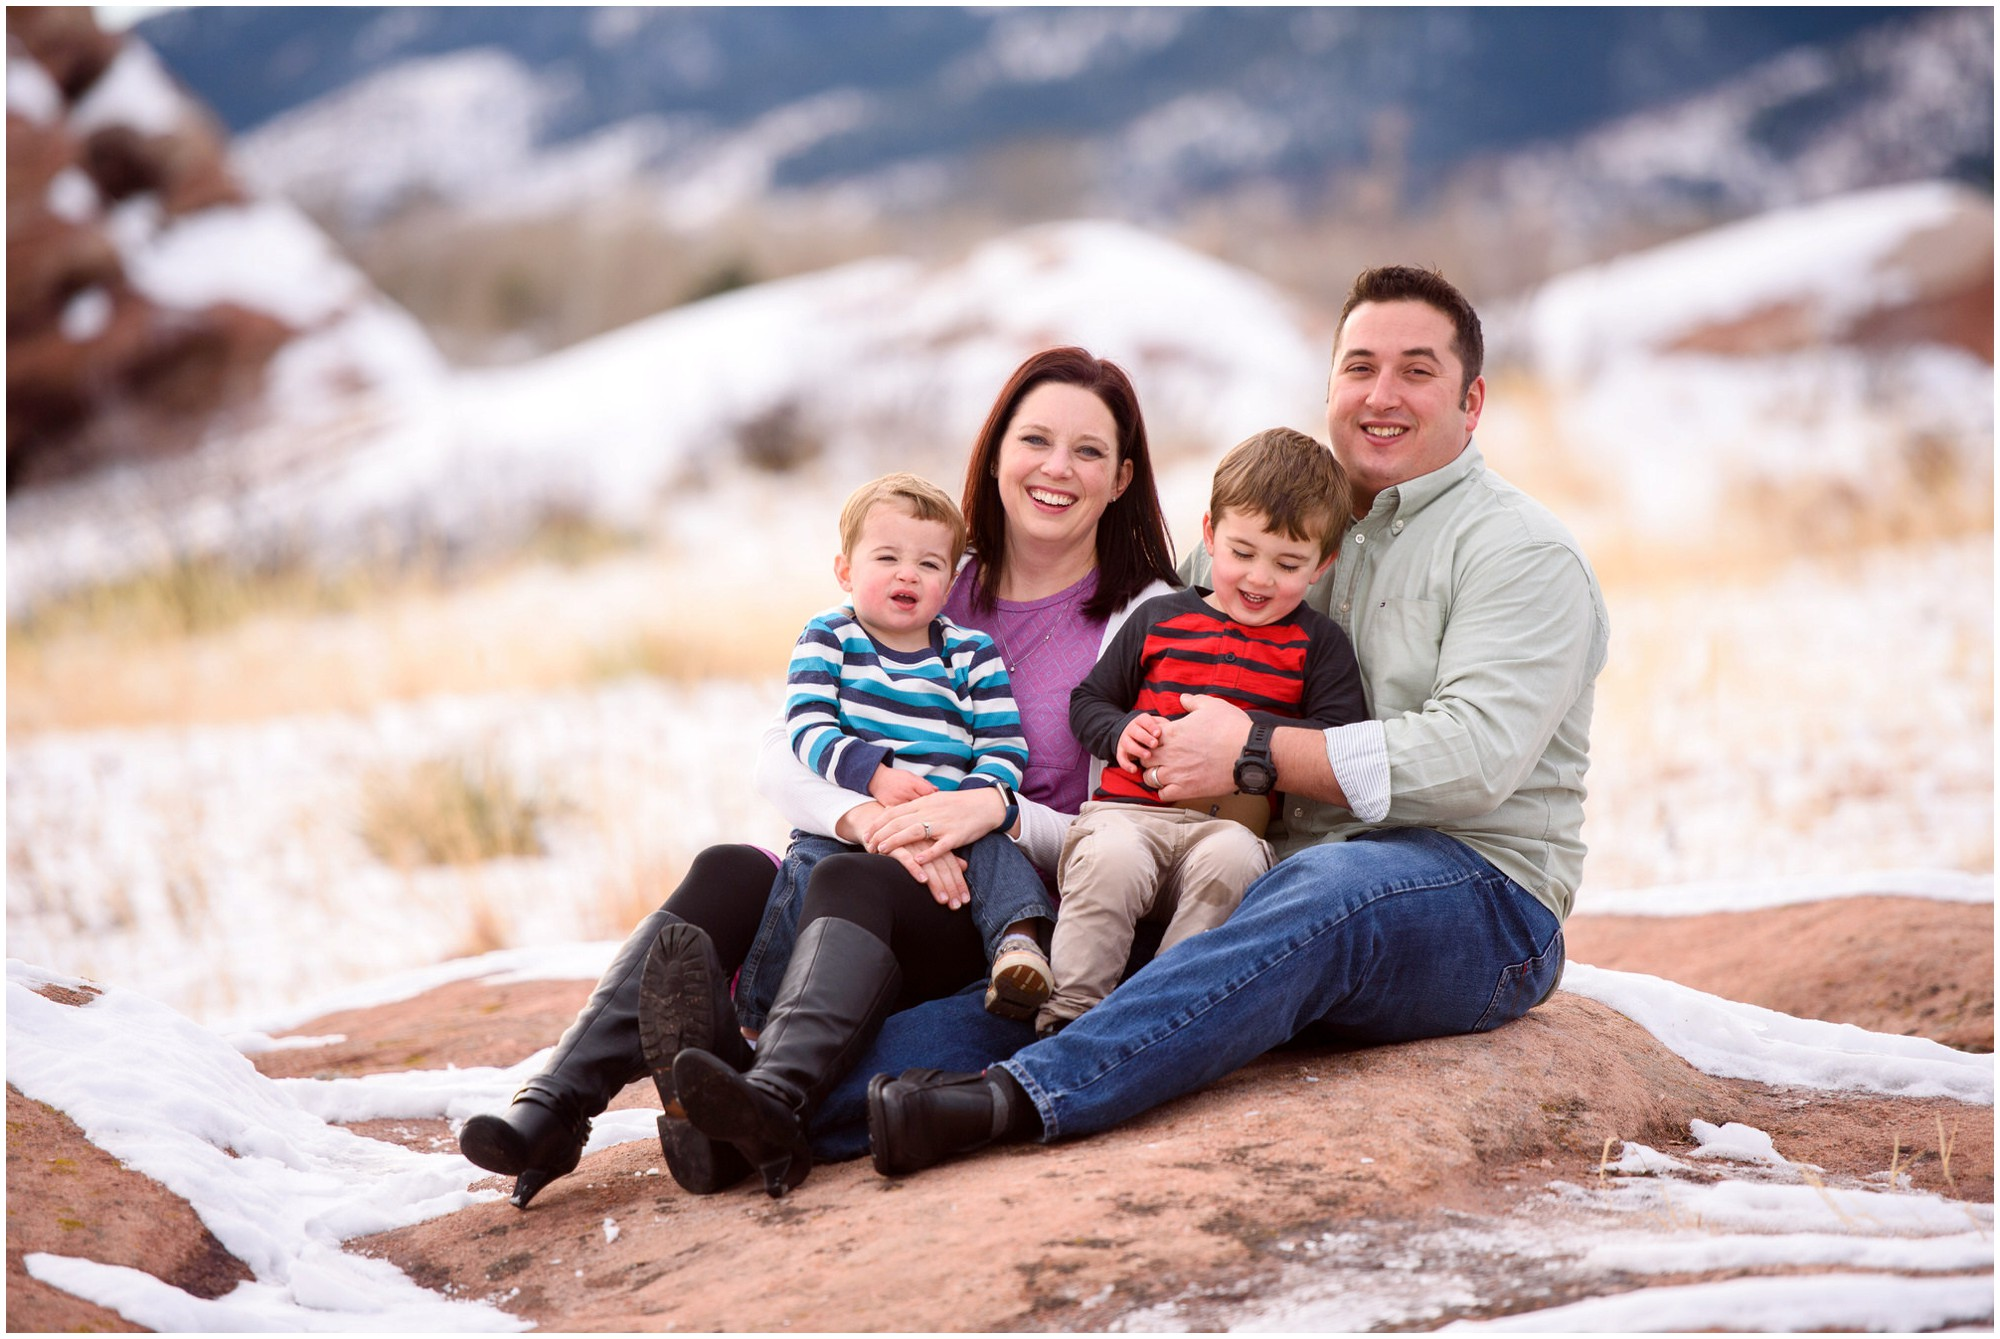 38-Littleton-colorado-winter-family-photography.jpg